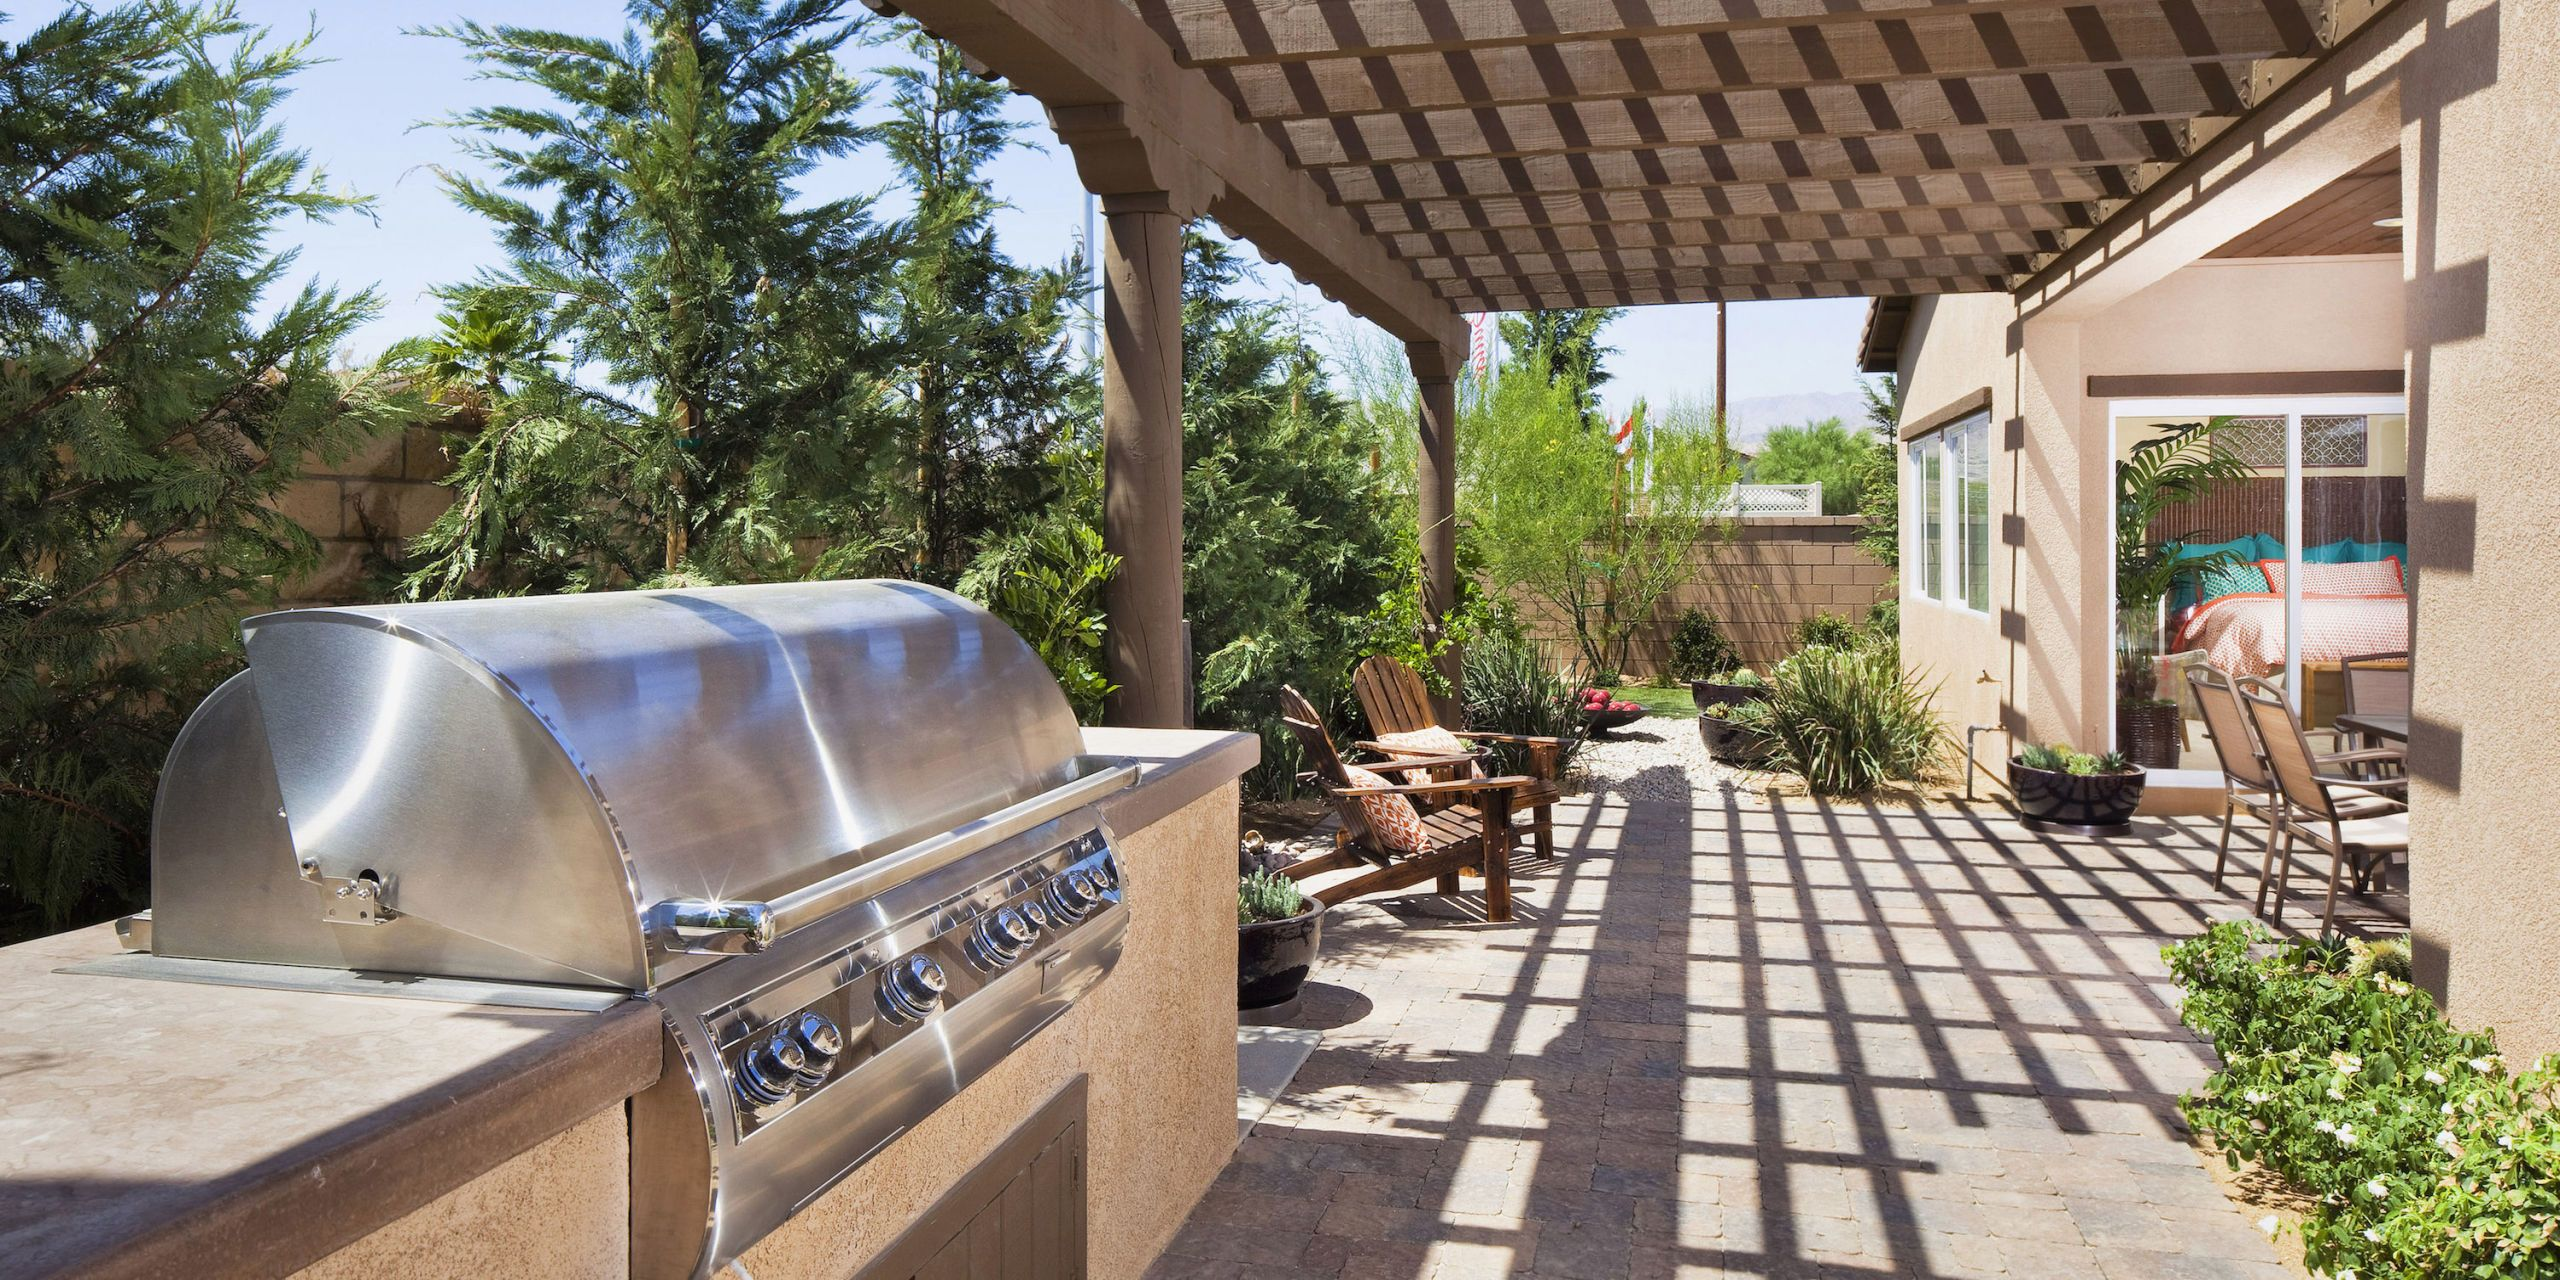 25 Outdoor Kitchen Design Ideas Tips For Outdoor Cooking